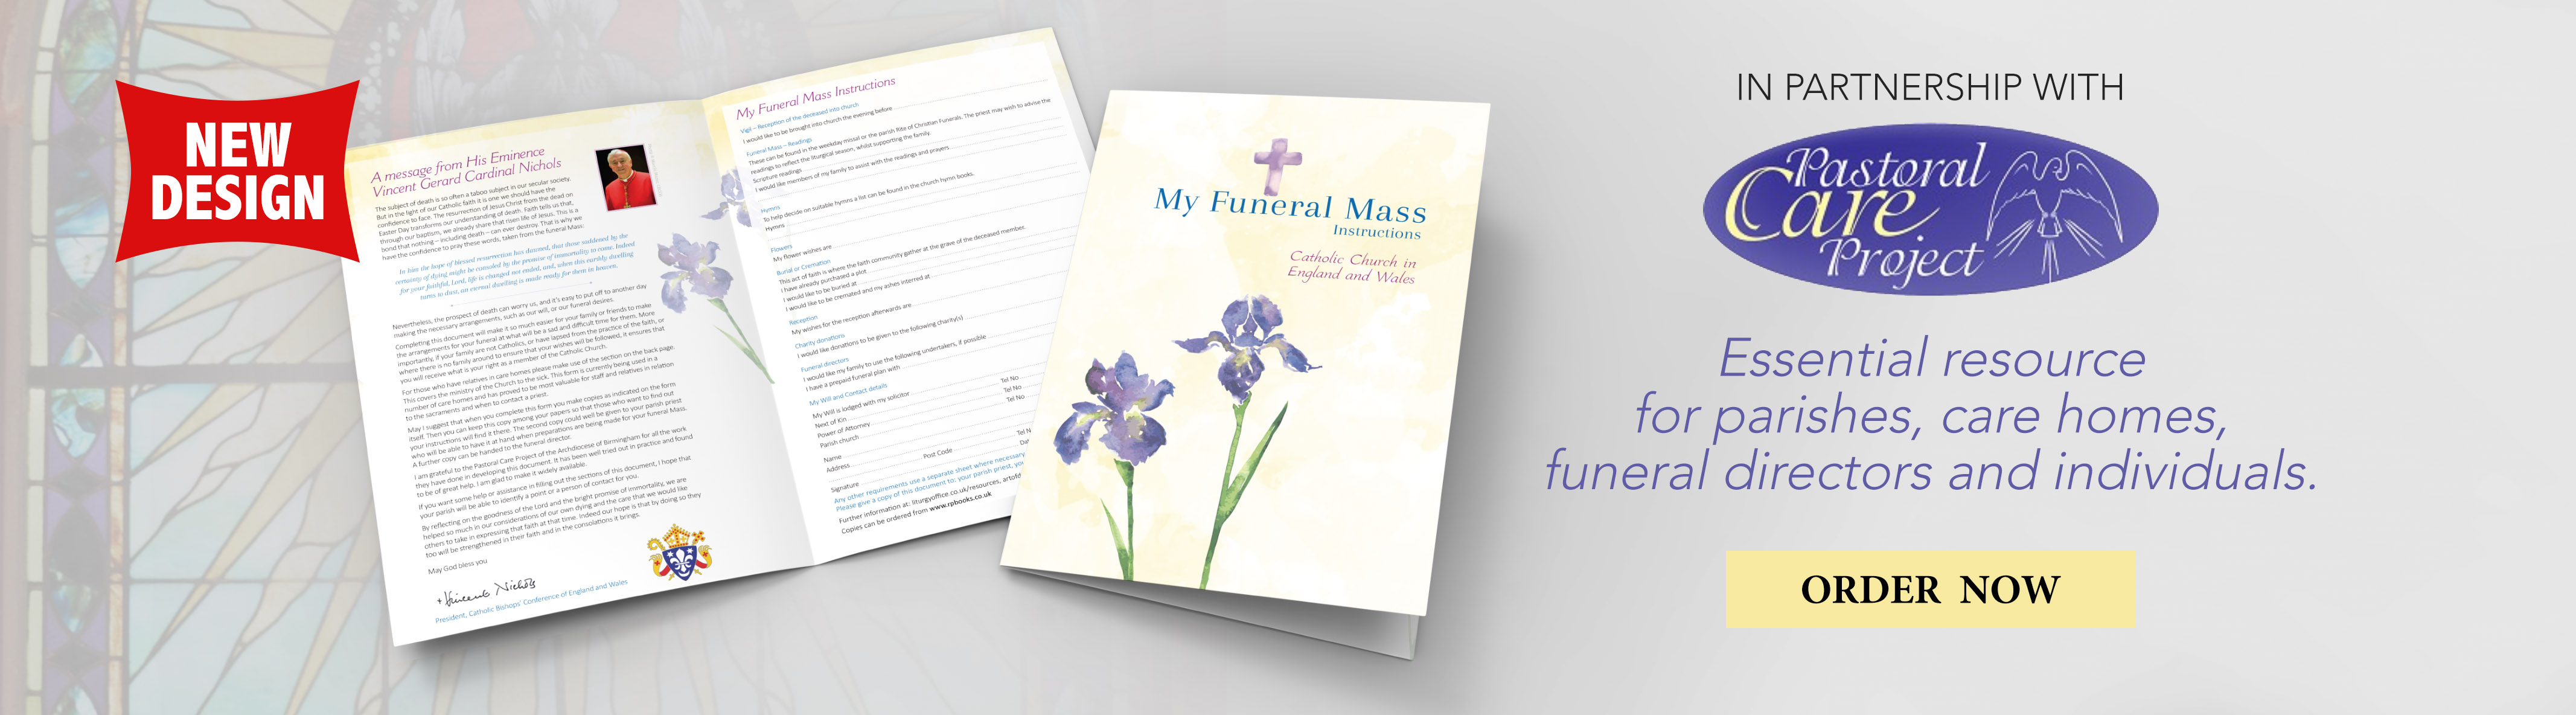 Funeral Planning By Pastoral Care Project